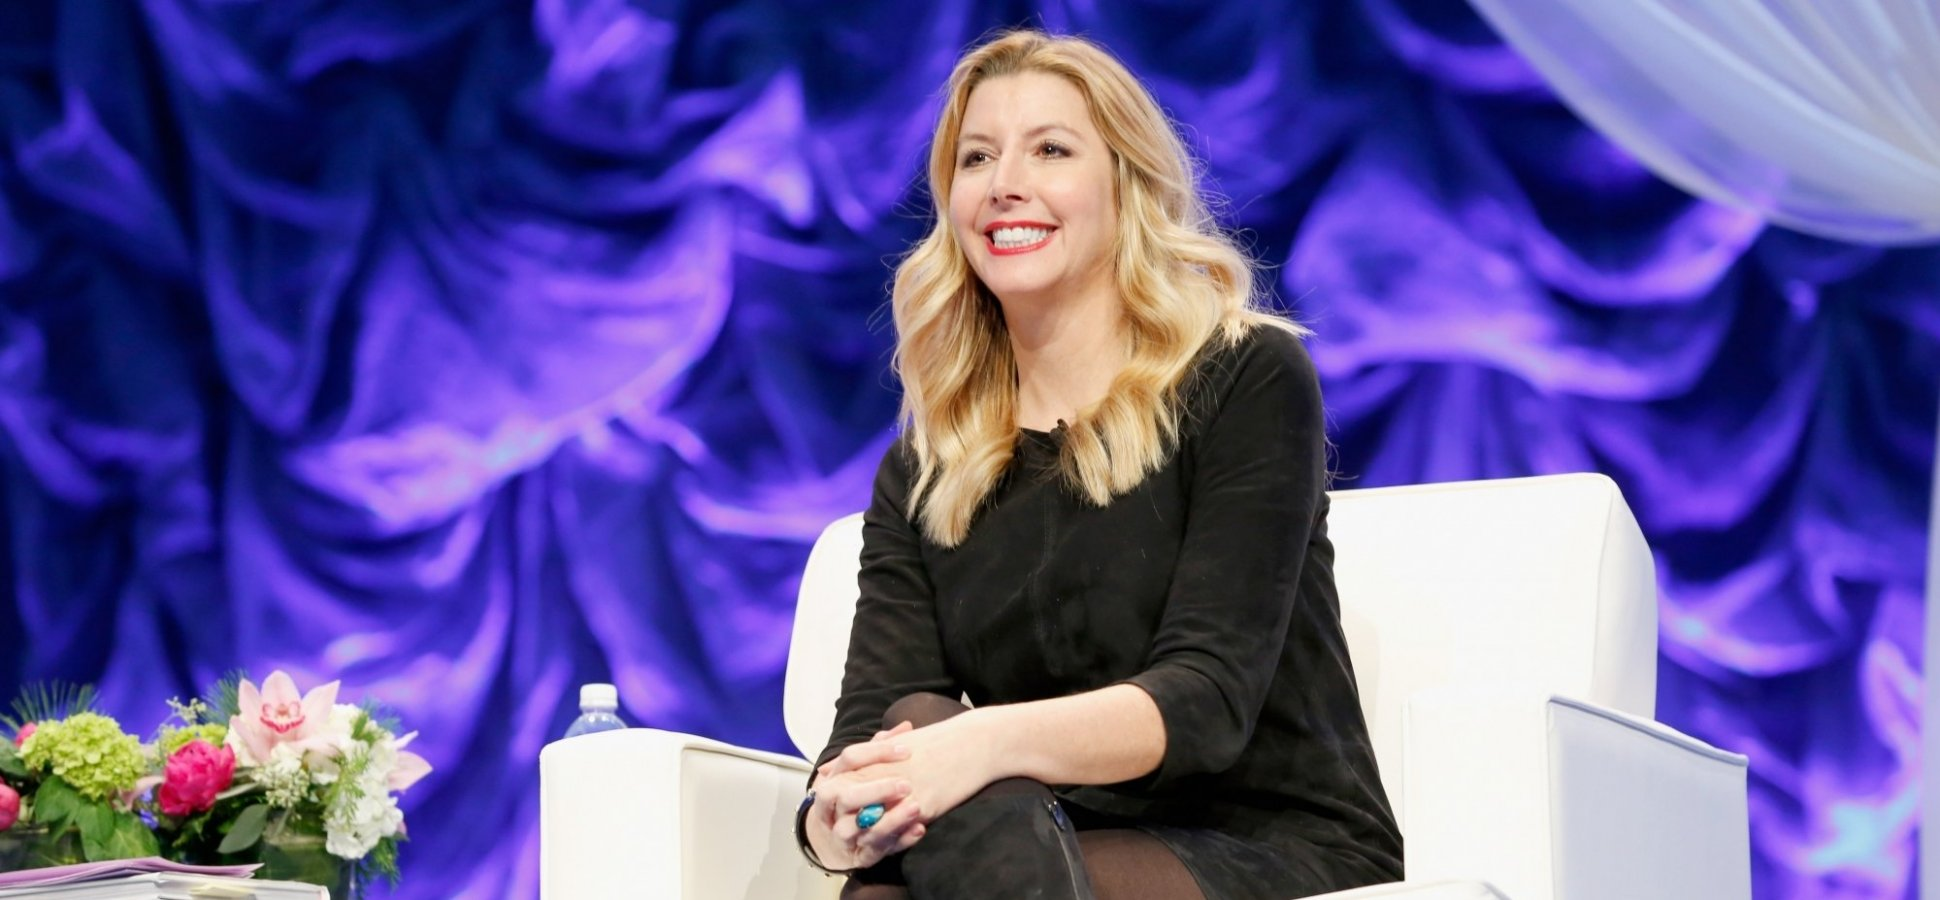 In Her New MasterClass, Self-Made Billionaire Sara Blakely Shares 7 Remarkable Tips for Turning Any Idea Into a Successful Company